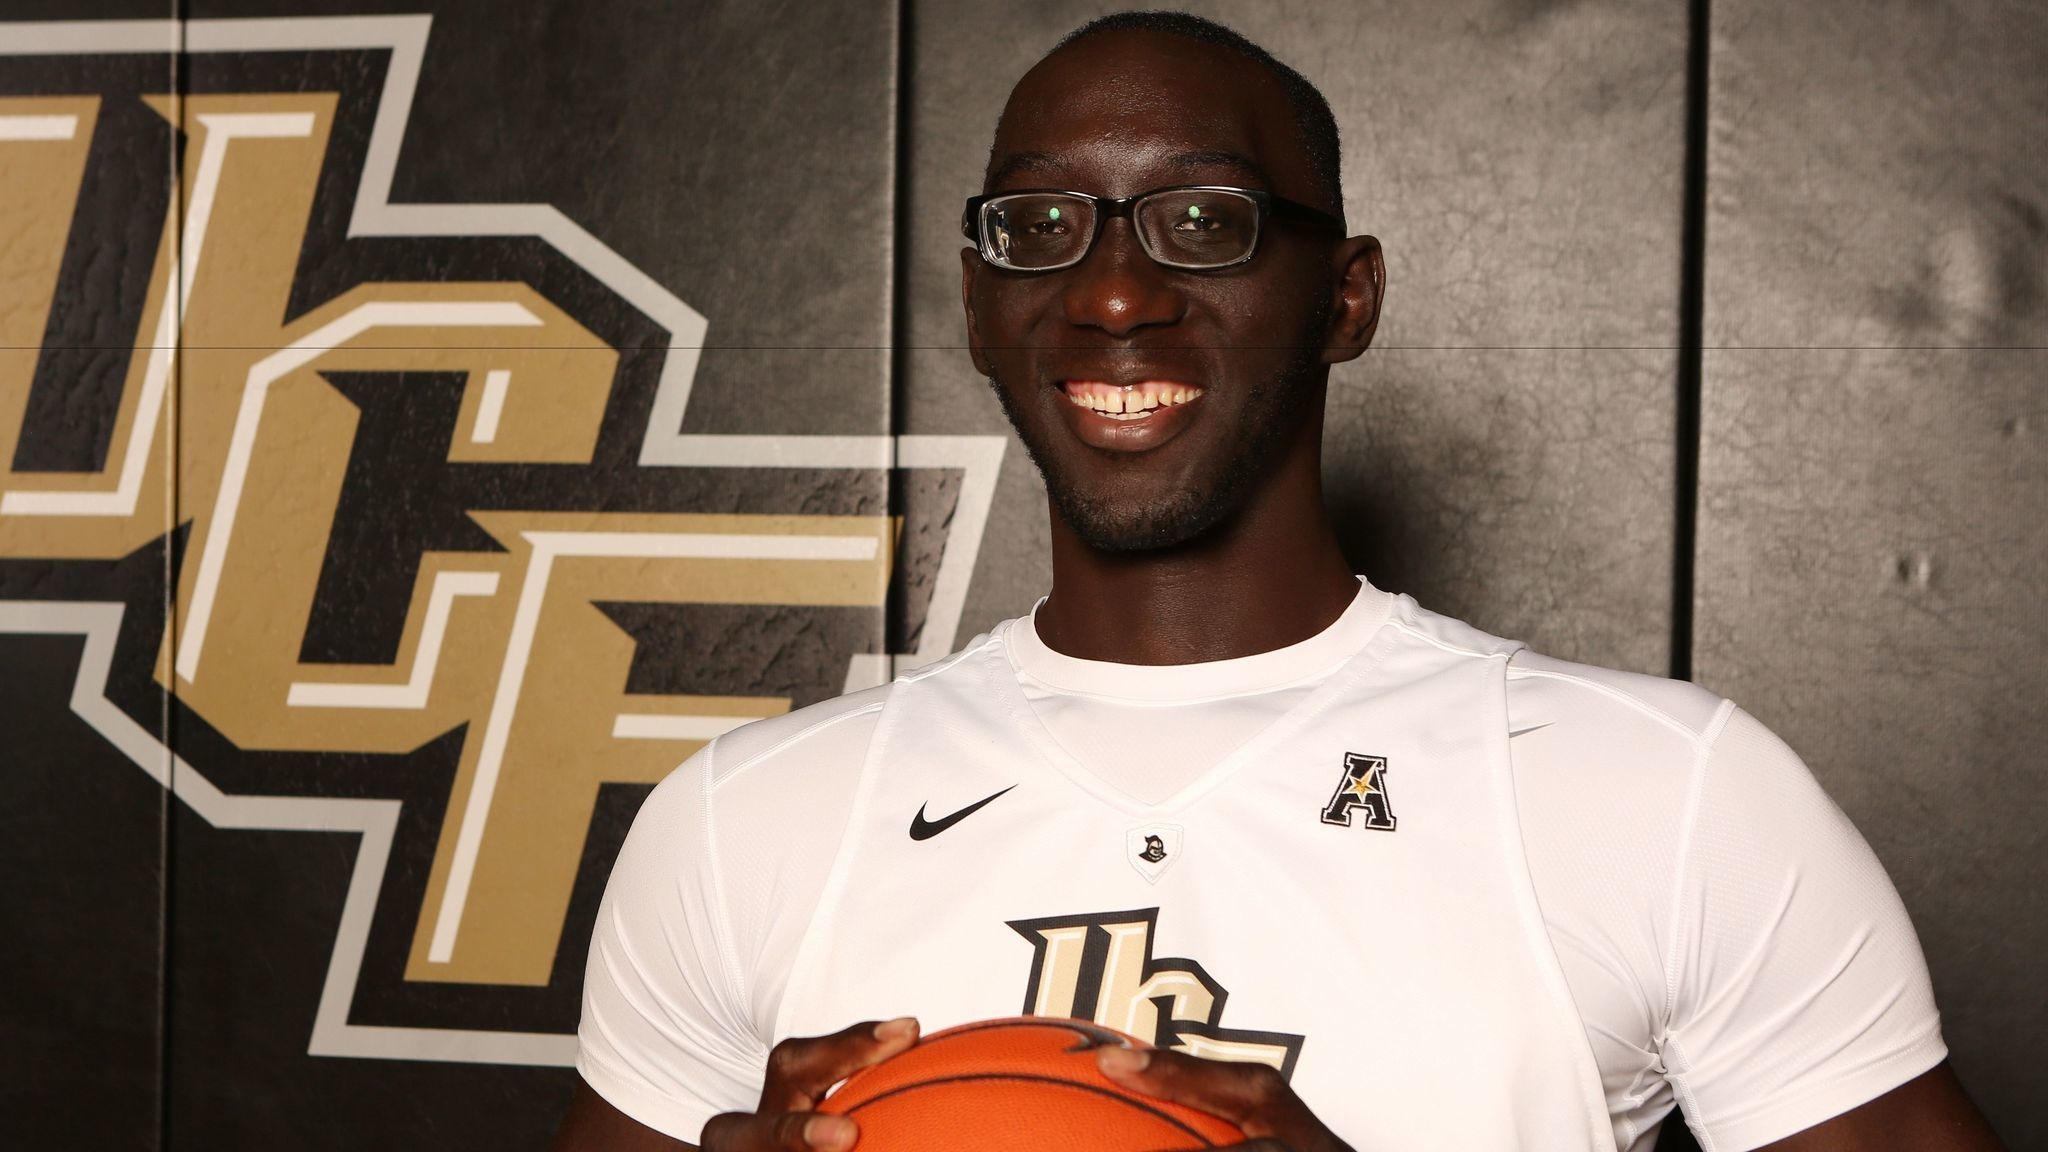 Tacko Fall to test NBA Draft waters with option to return to UCF - Orlando Sentinel